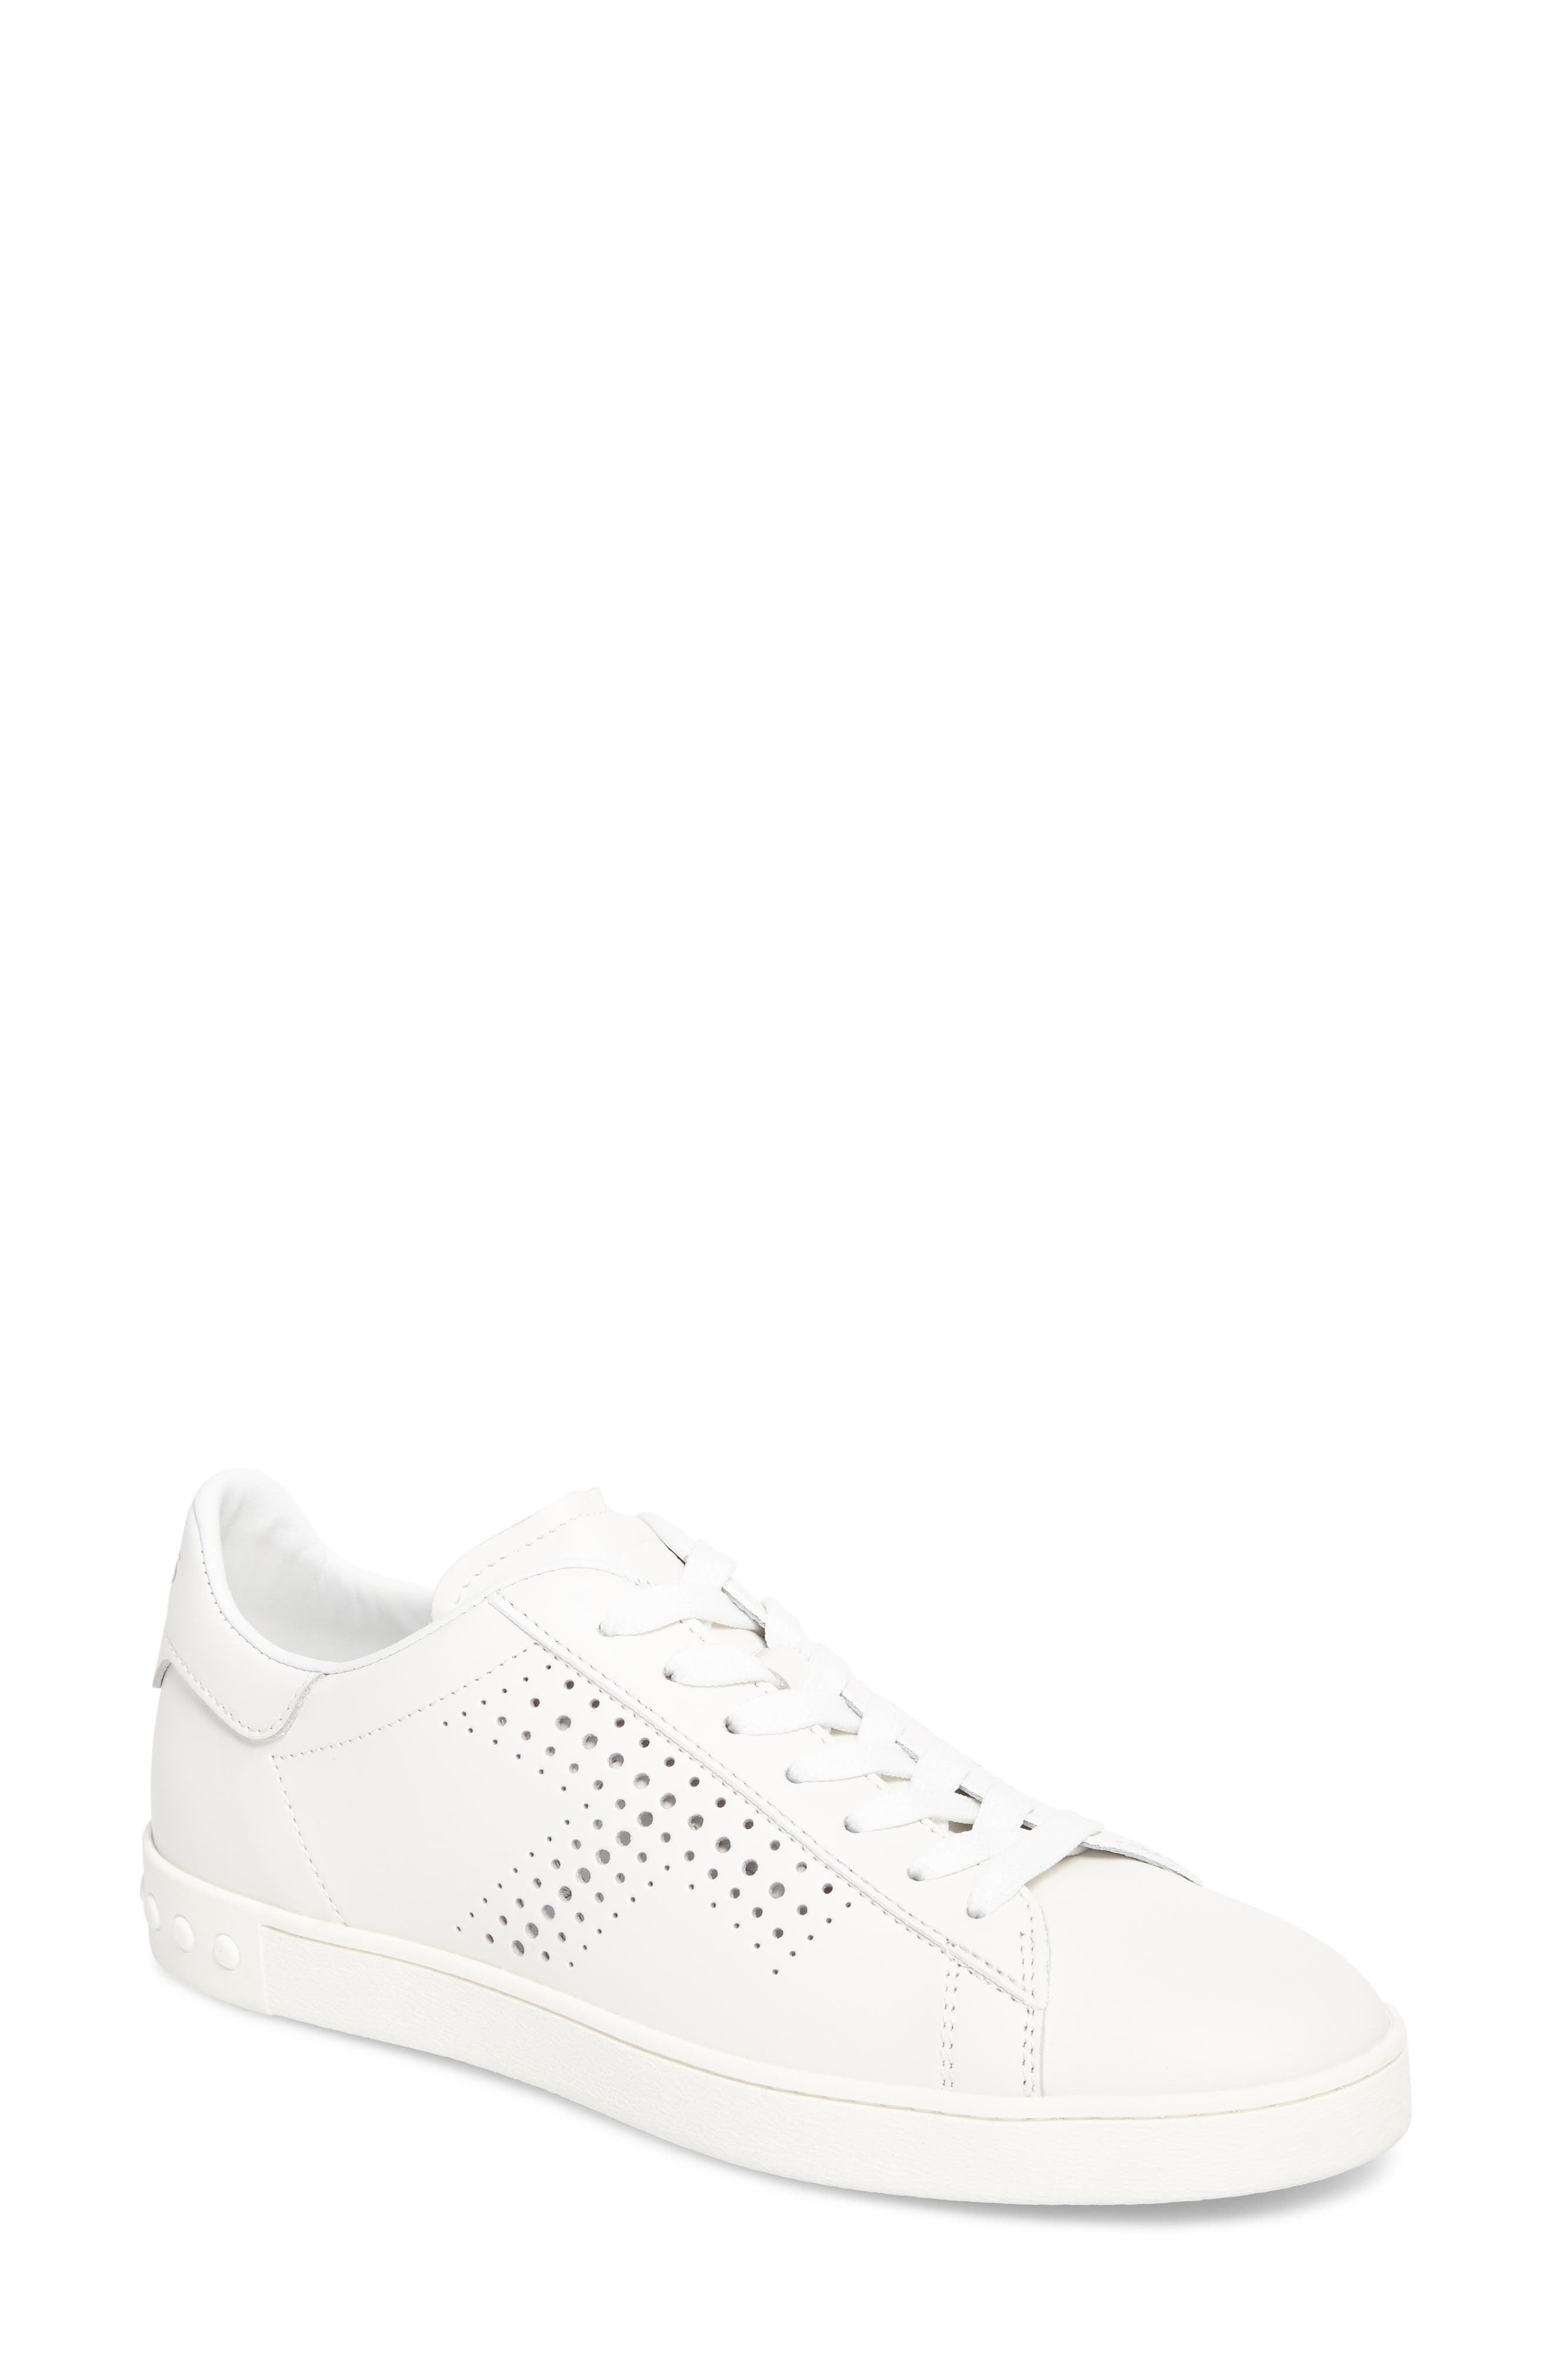 Perforated T Sneaker,                             Main thumbnail 1, color,                             100